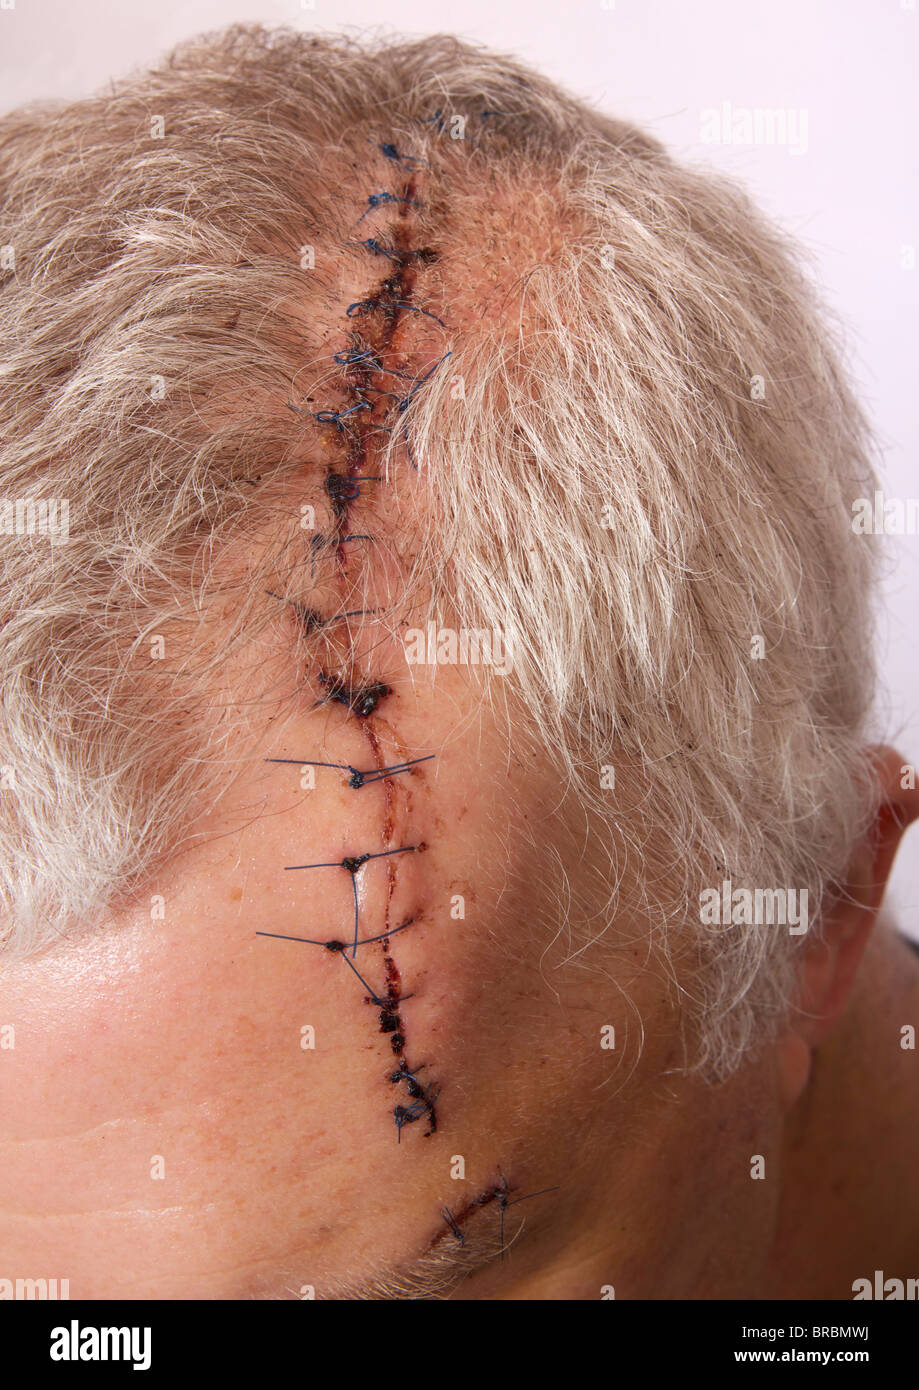 man with long head wound and stitches stock photo 31605326 alamy